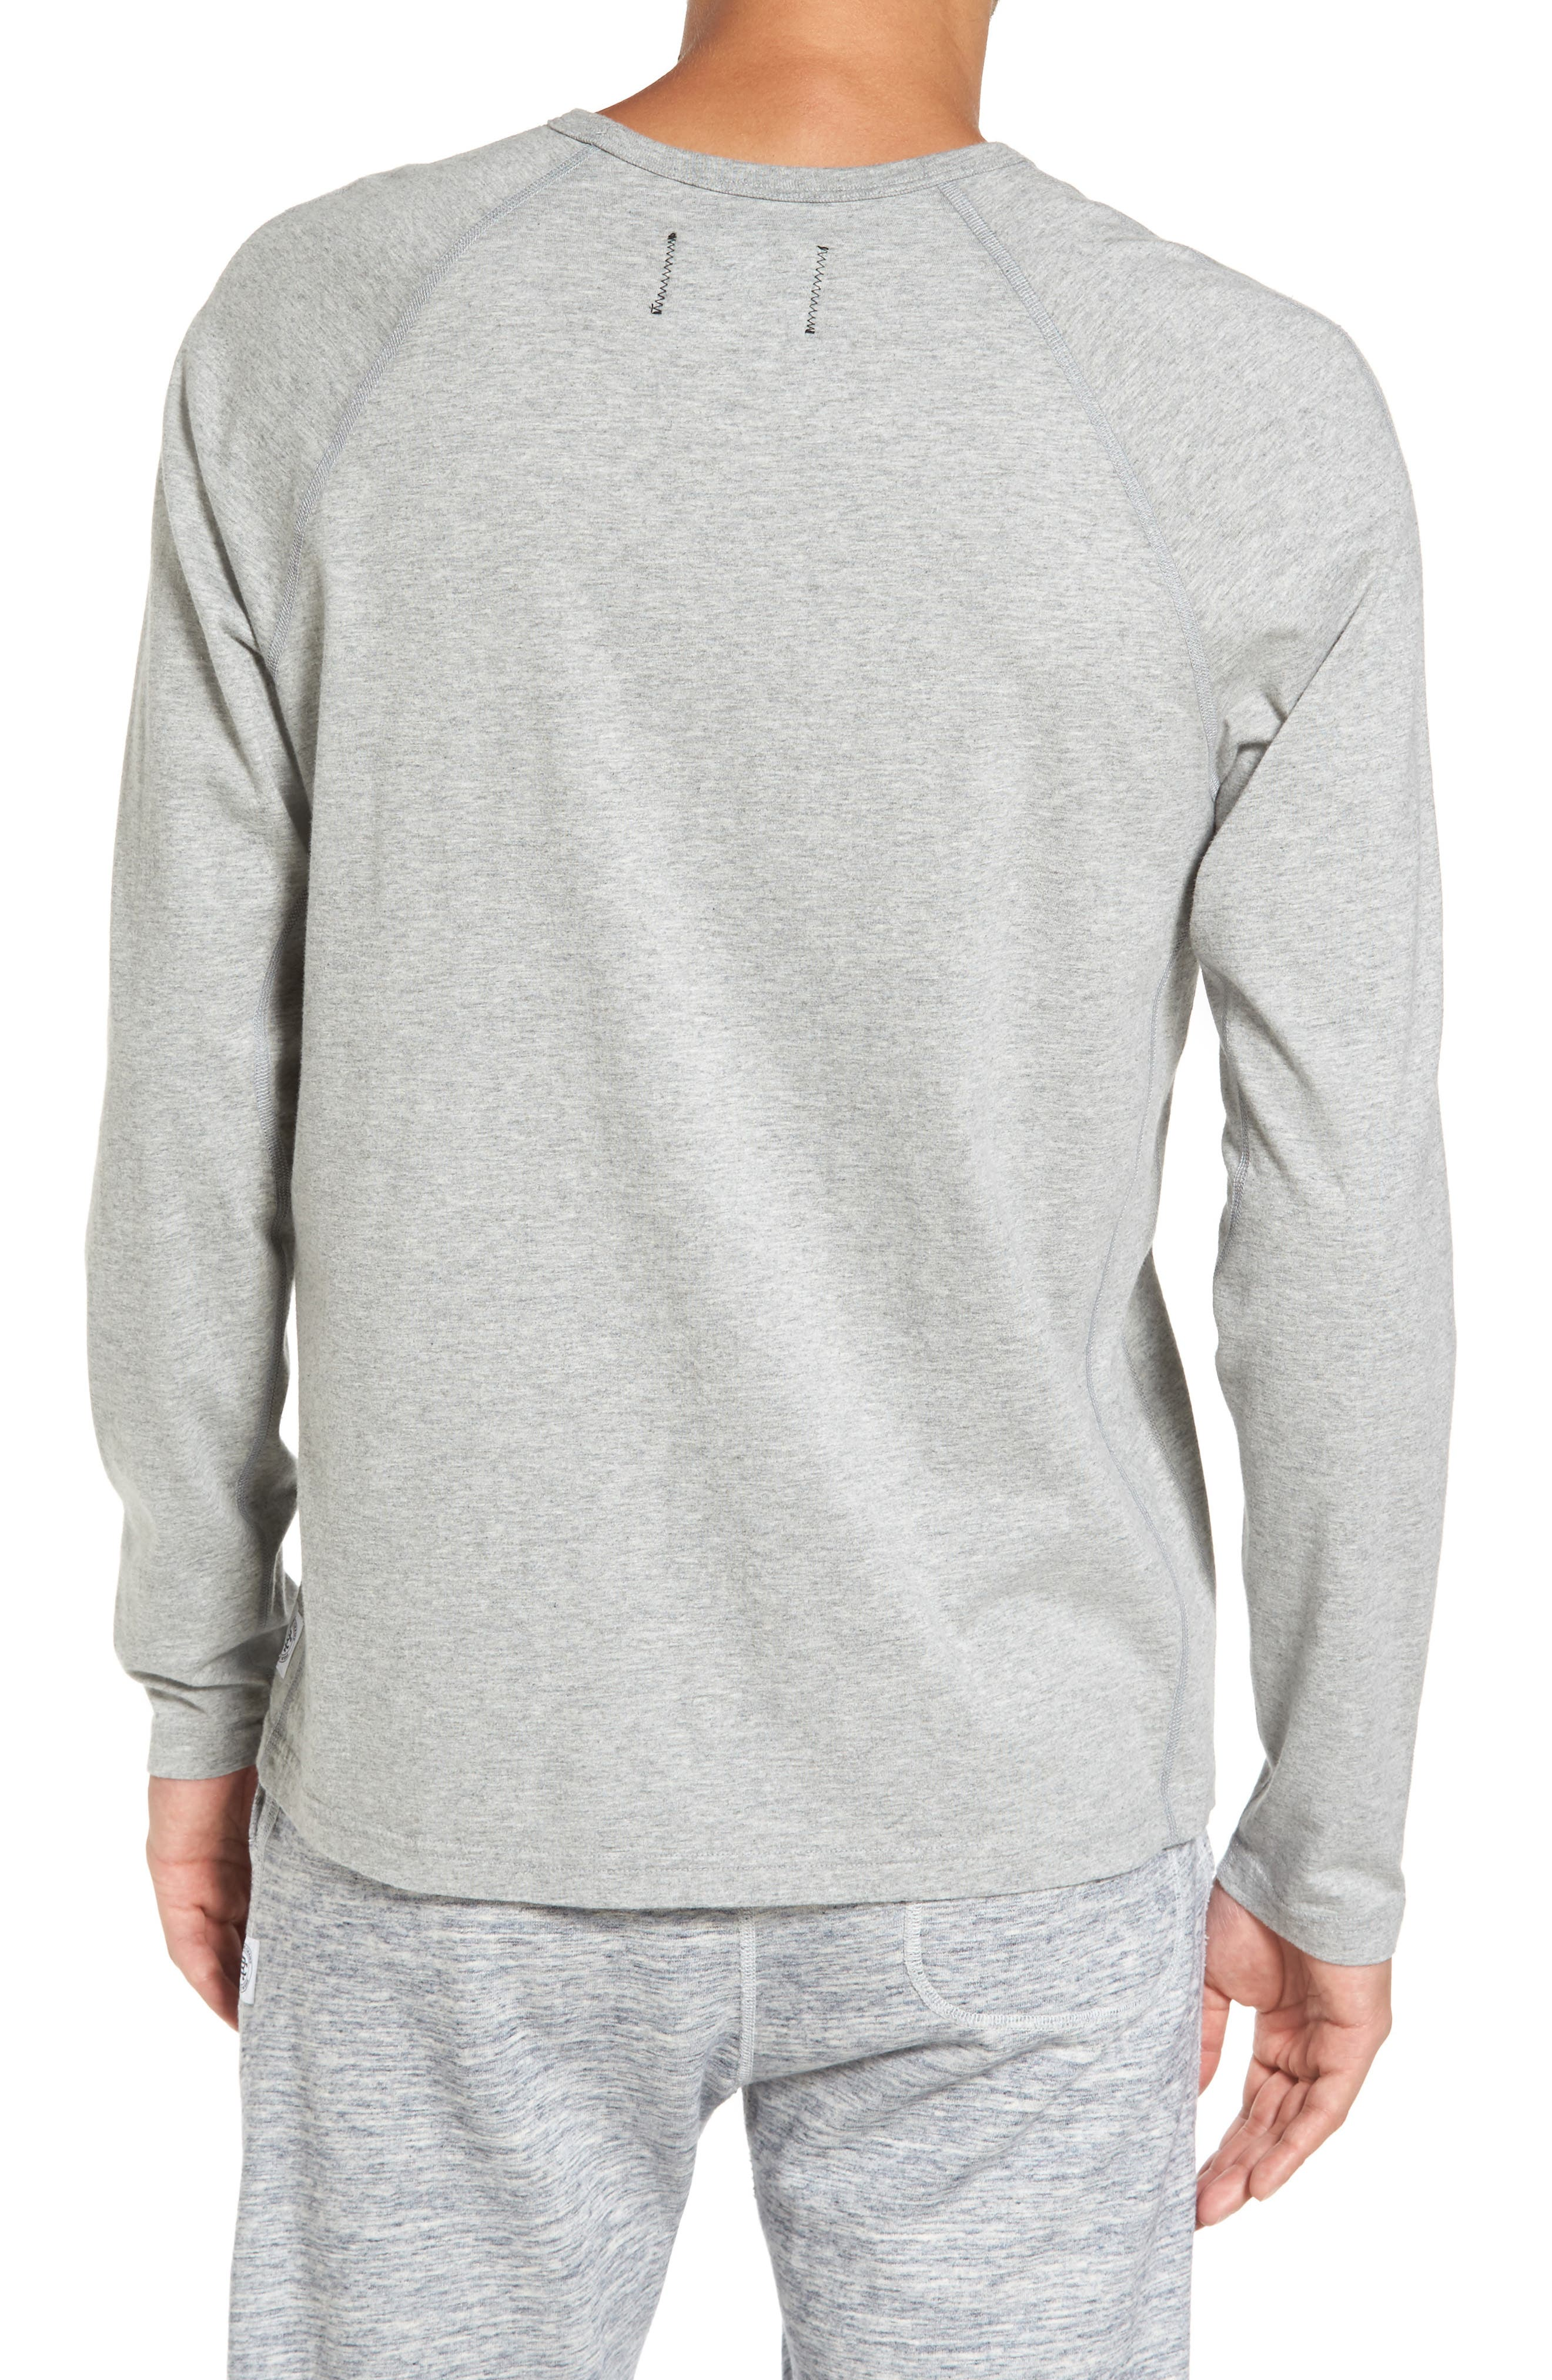 Gym Logo Long Sleeve T-Shirt,                             Alternate thumbnail 2, color,                             Heather Grey